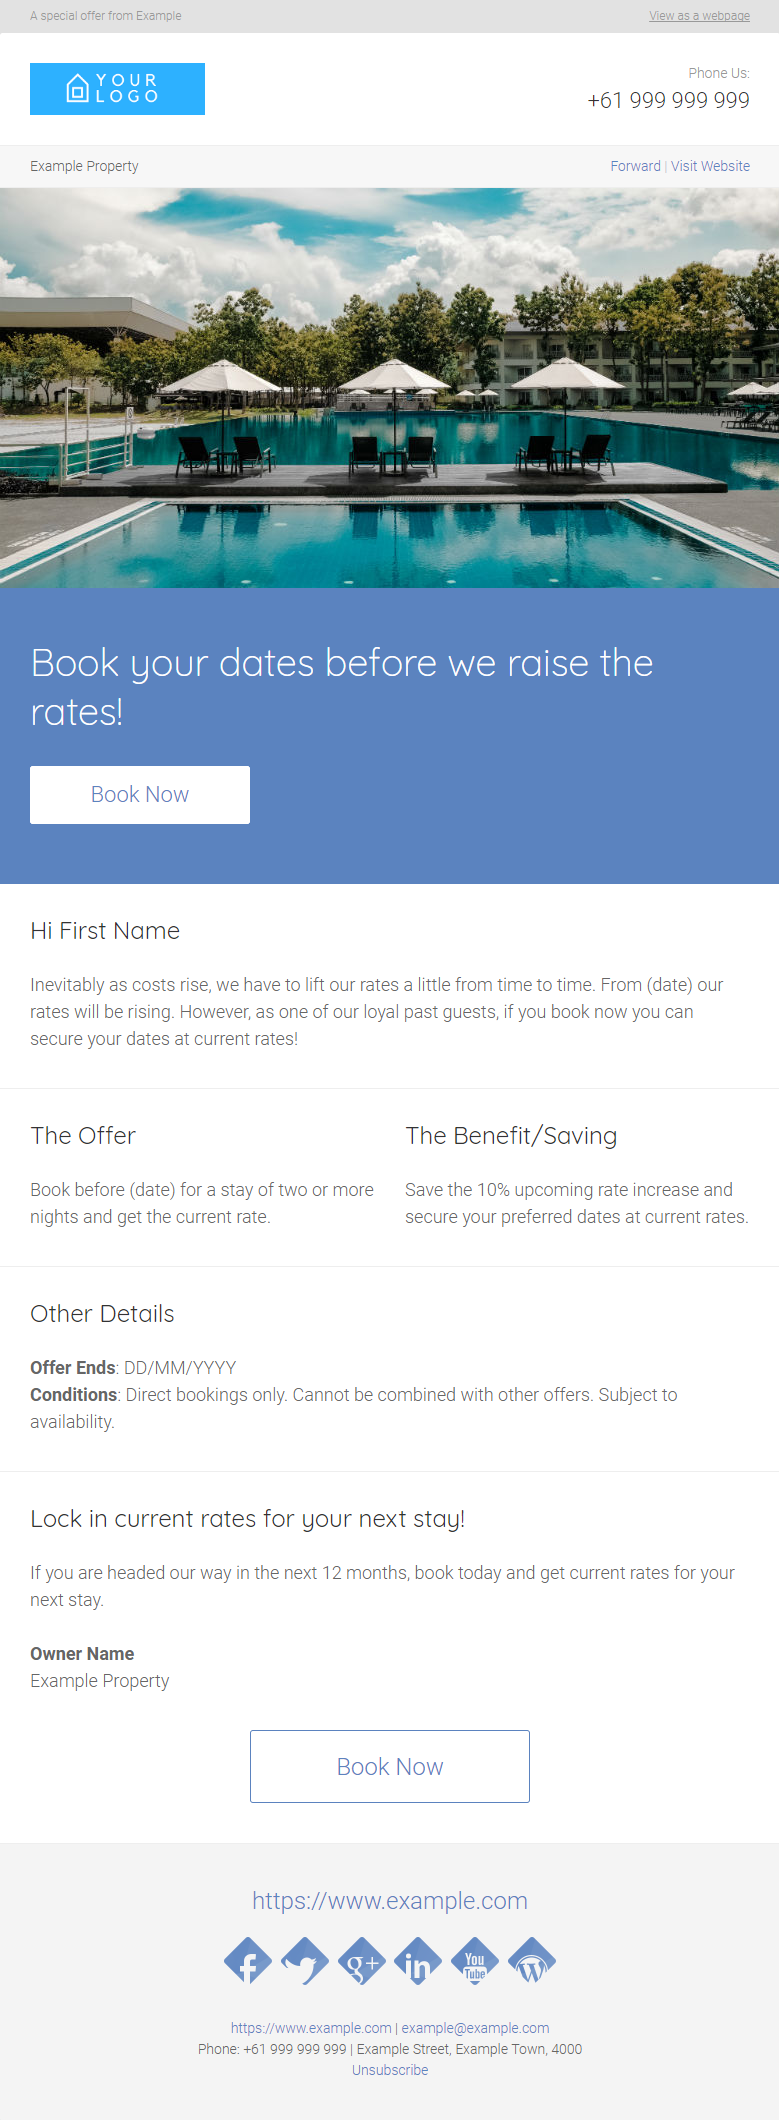 BEAT A RATE RISE - Click to view